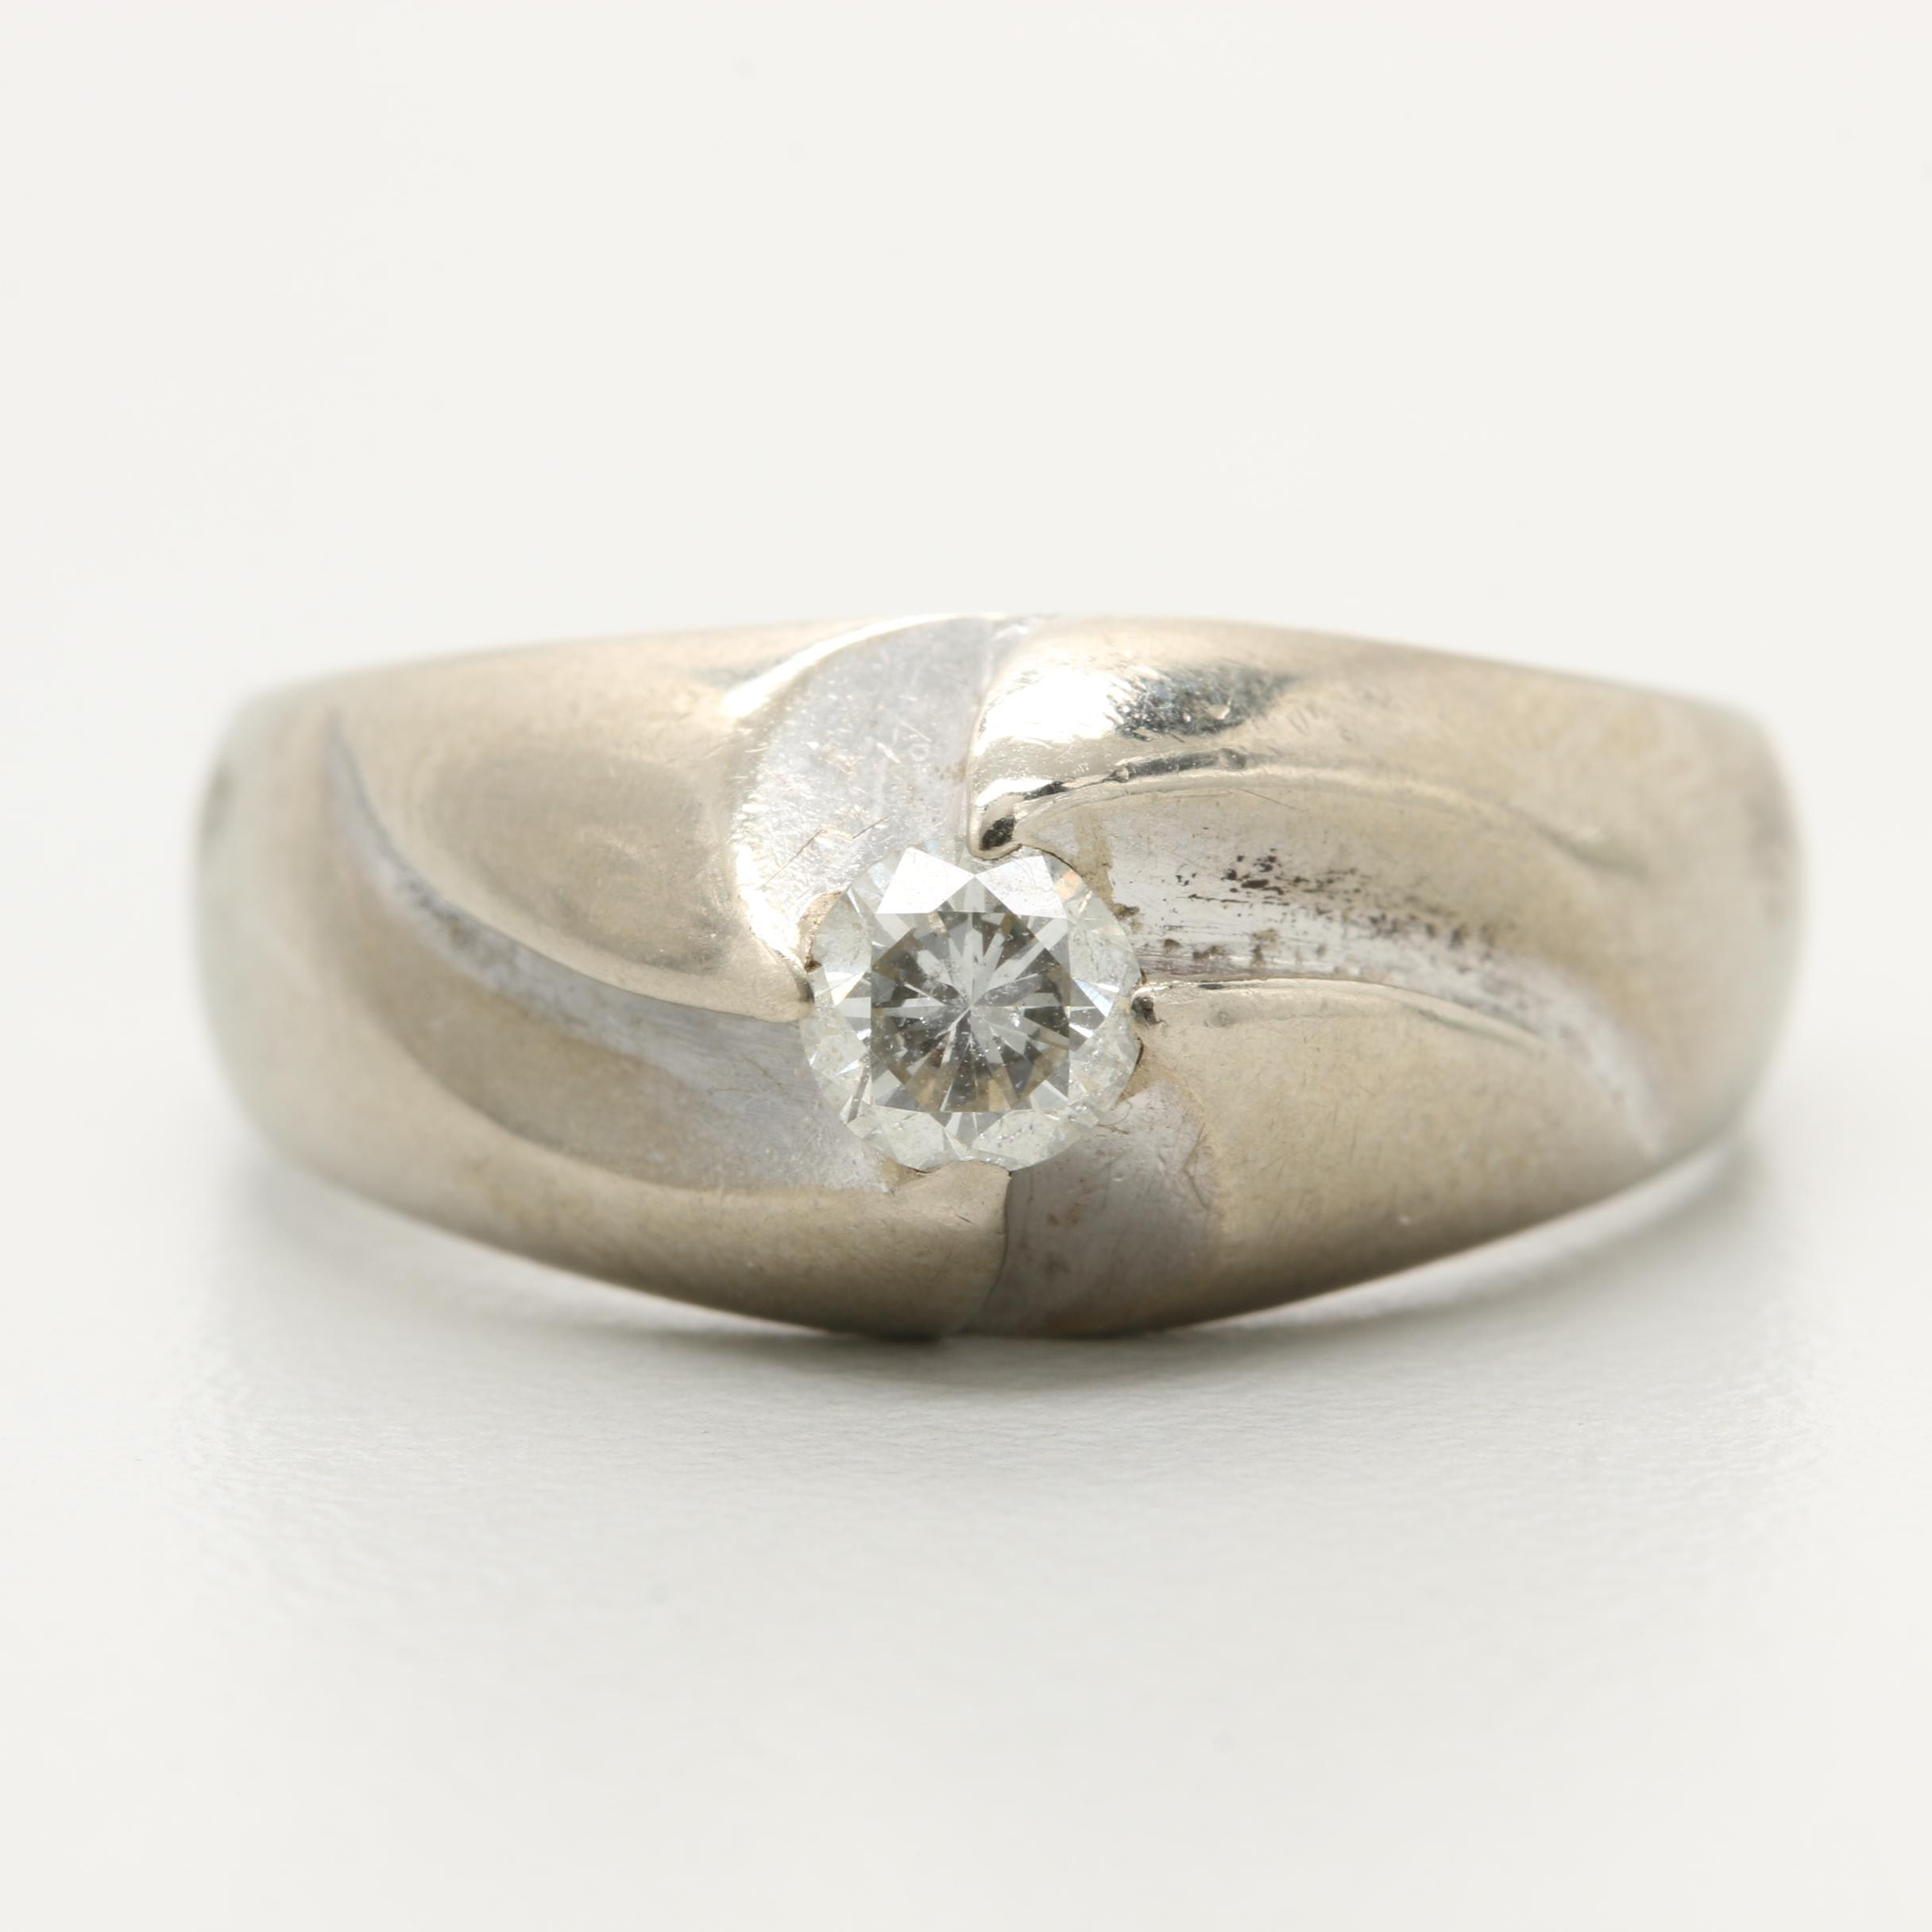 10K White Gold Solitaire Diamond Ring